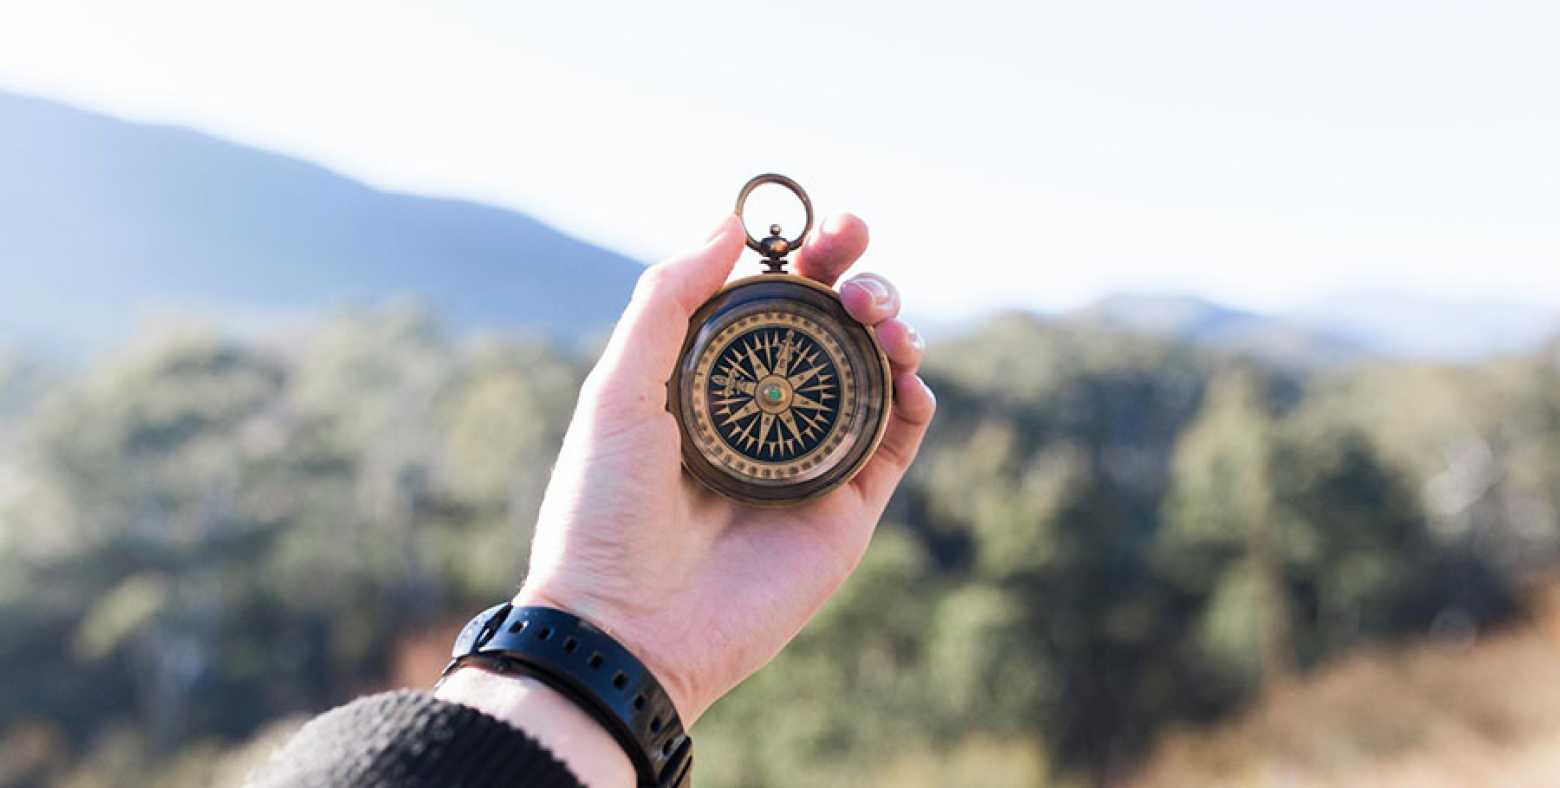 Person holding an old-fashioned compass